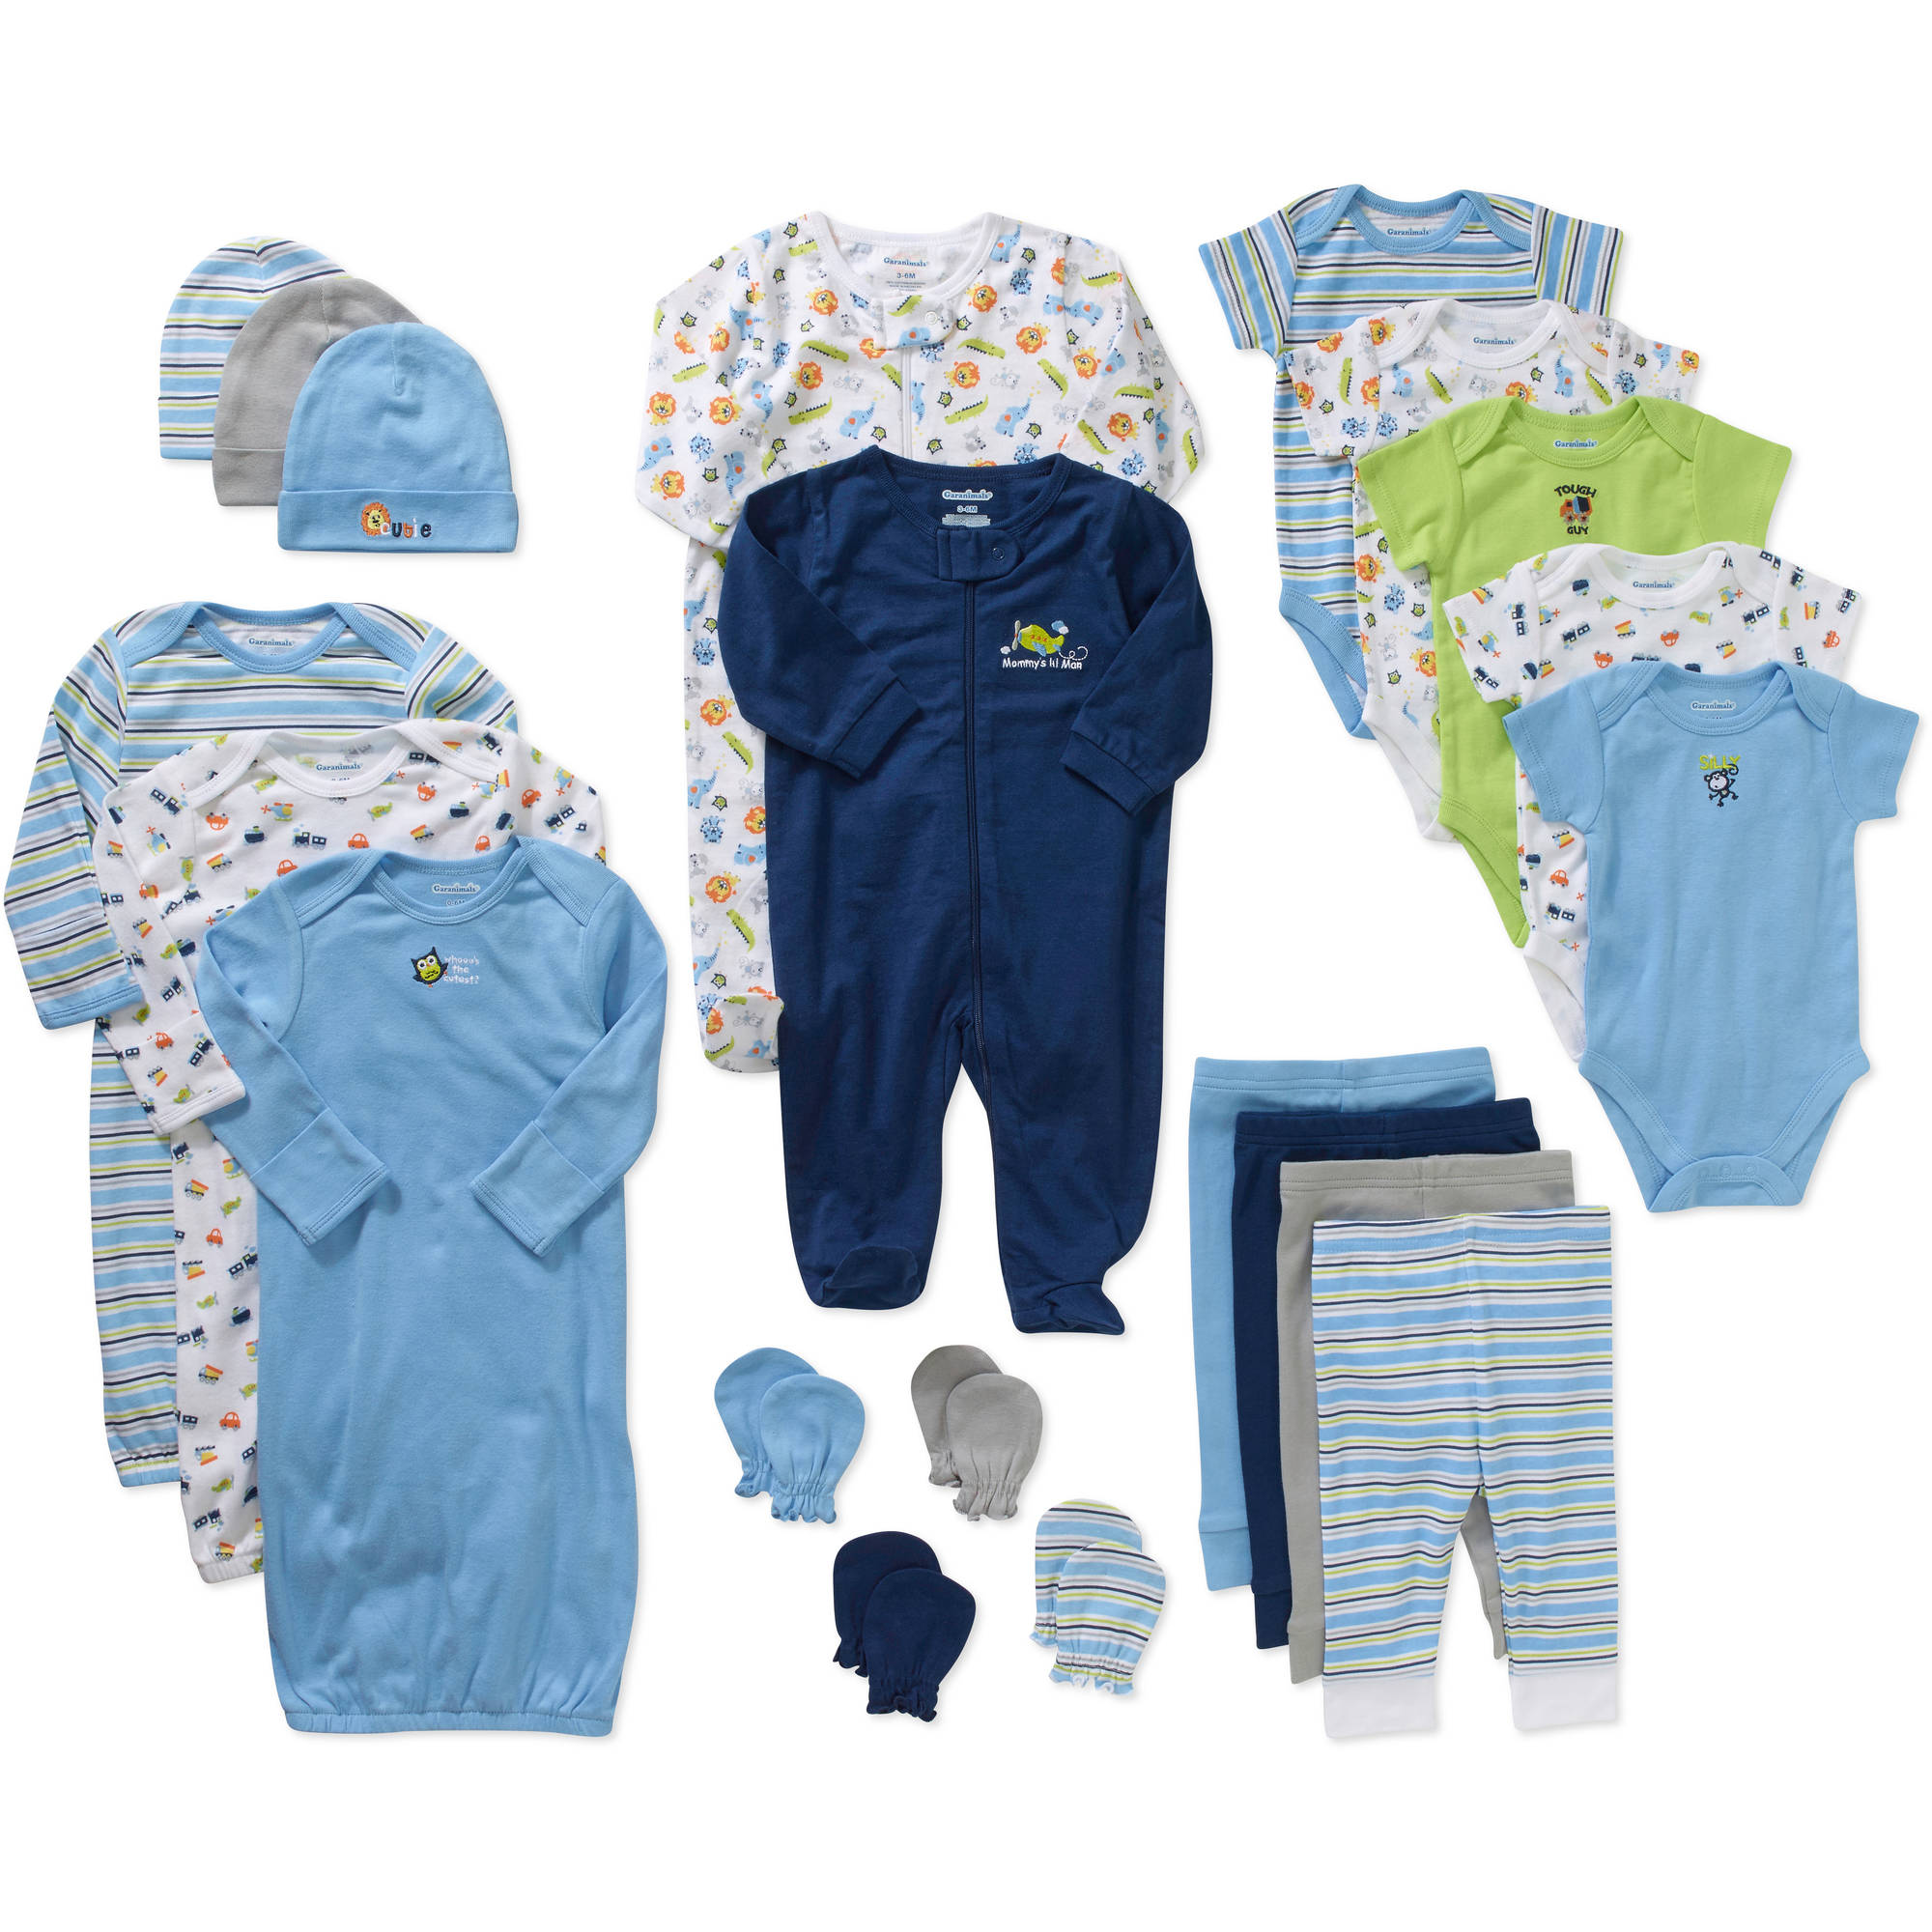 961dc23f4 Garanimals - Garanimals Newborn Baby Boy 21 Pc Layette Baby Shower ...